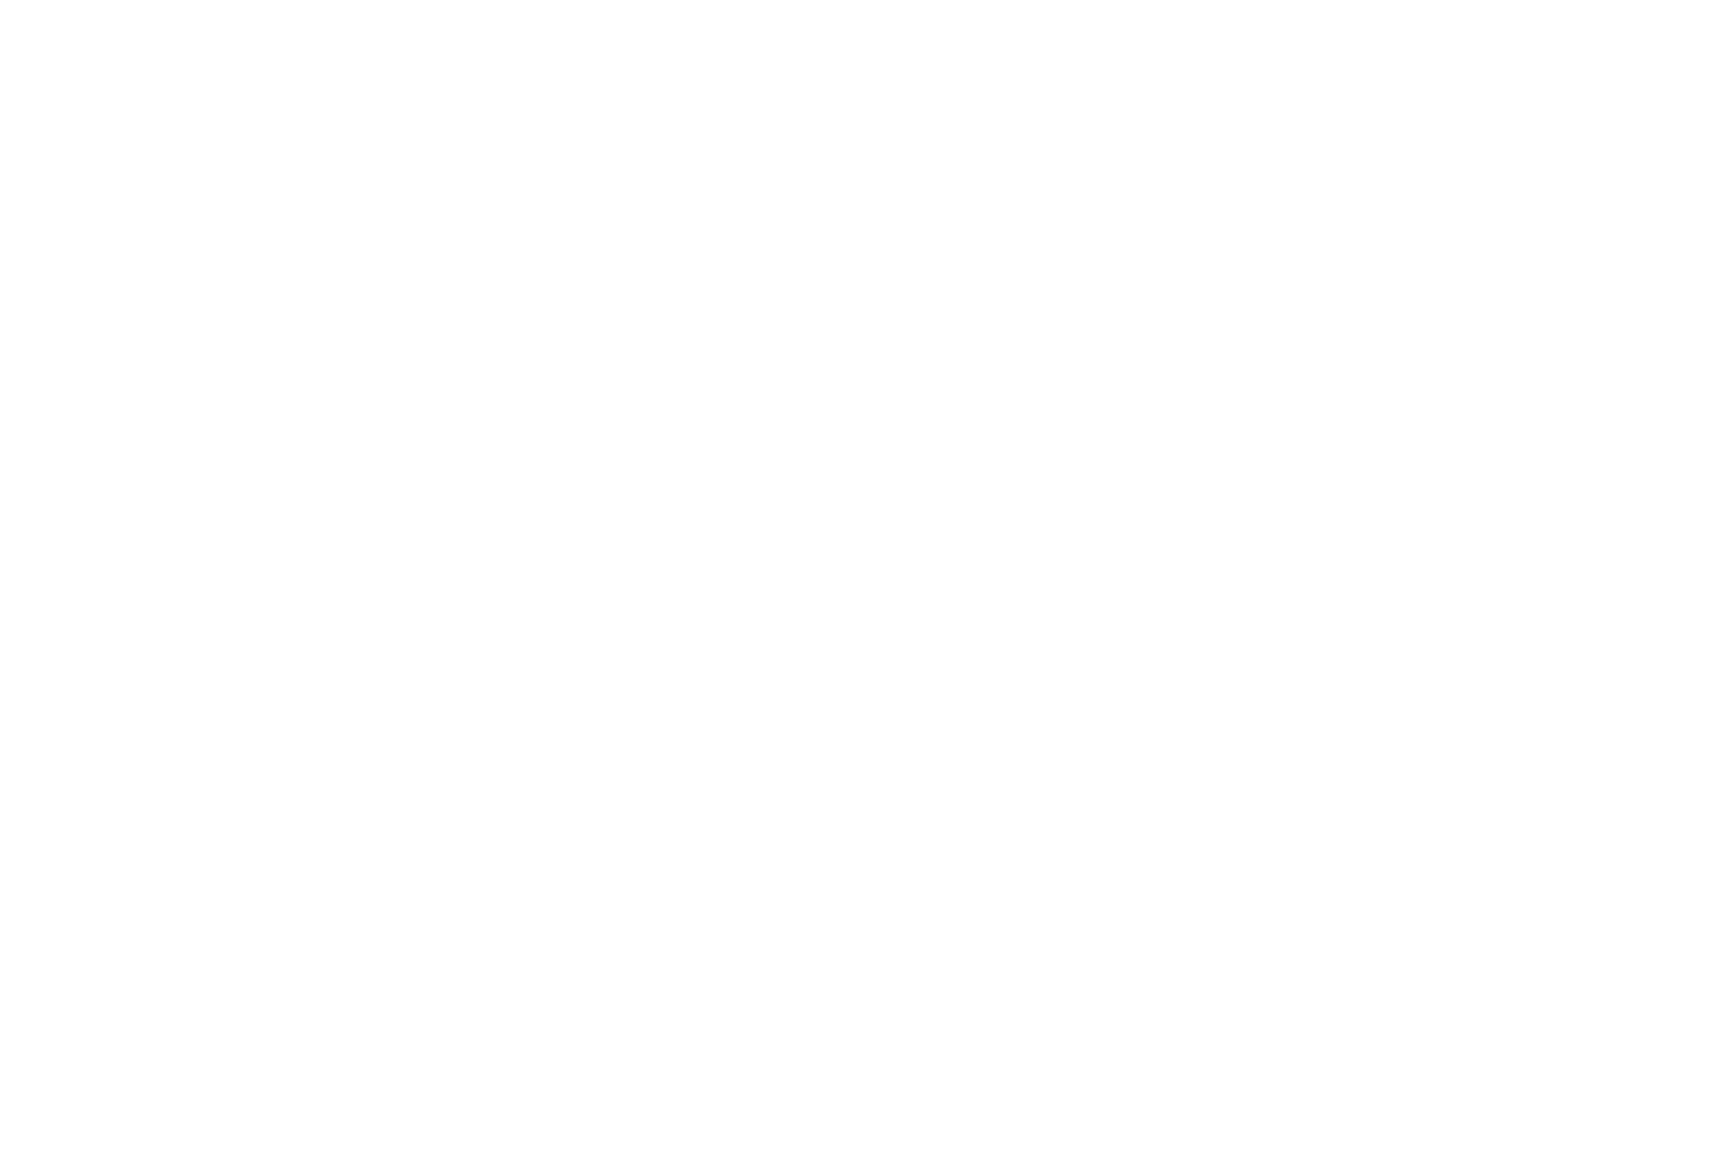 OFFICIAL SELECTION - Nevada Womens Film Festival - 2018-2.png